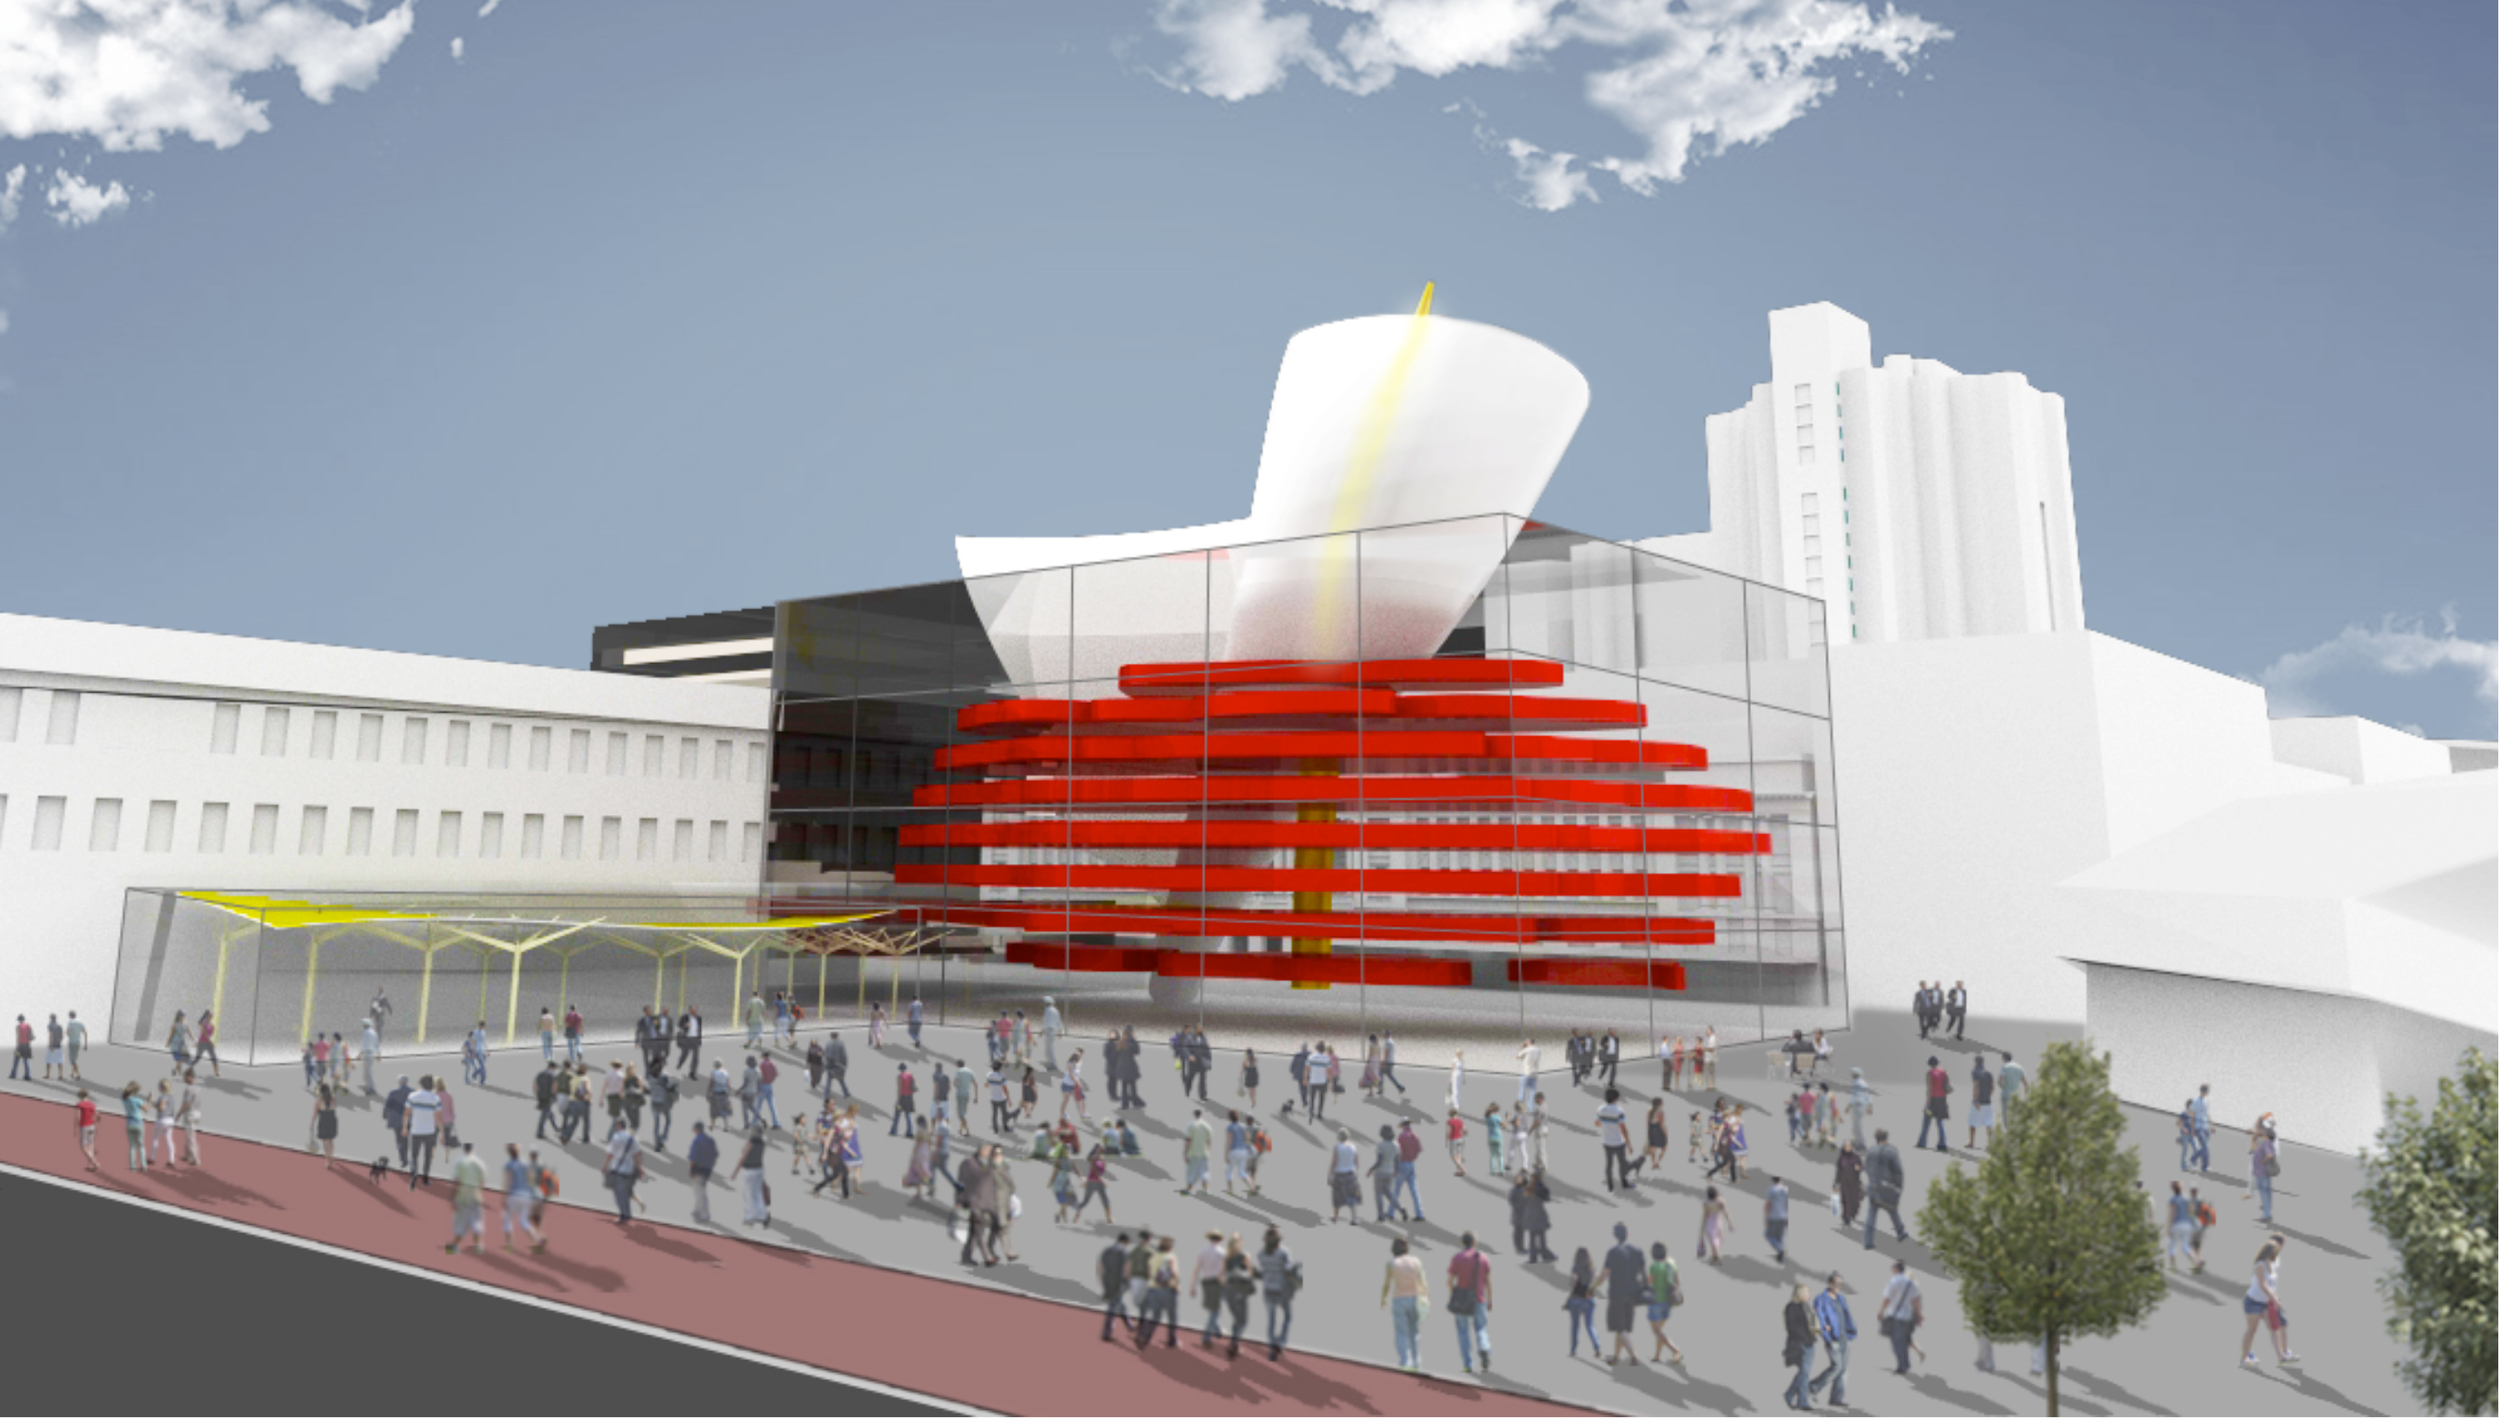 A new hotel and art complex aim to activate the plaza behind Parliament house